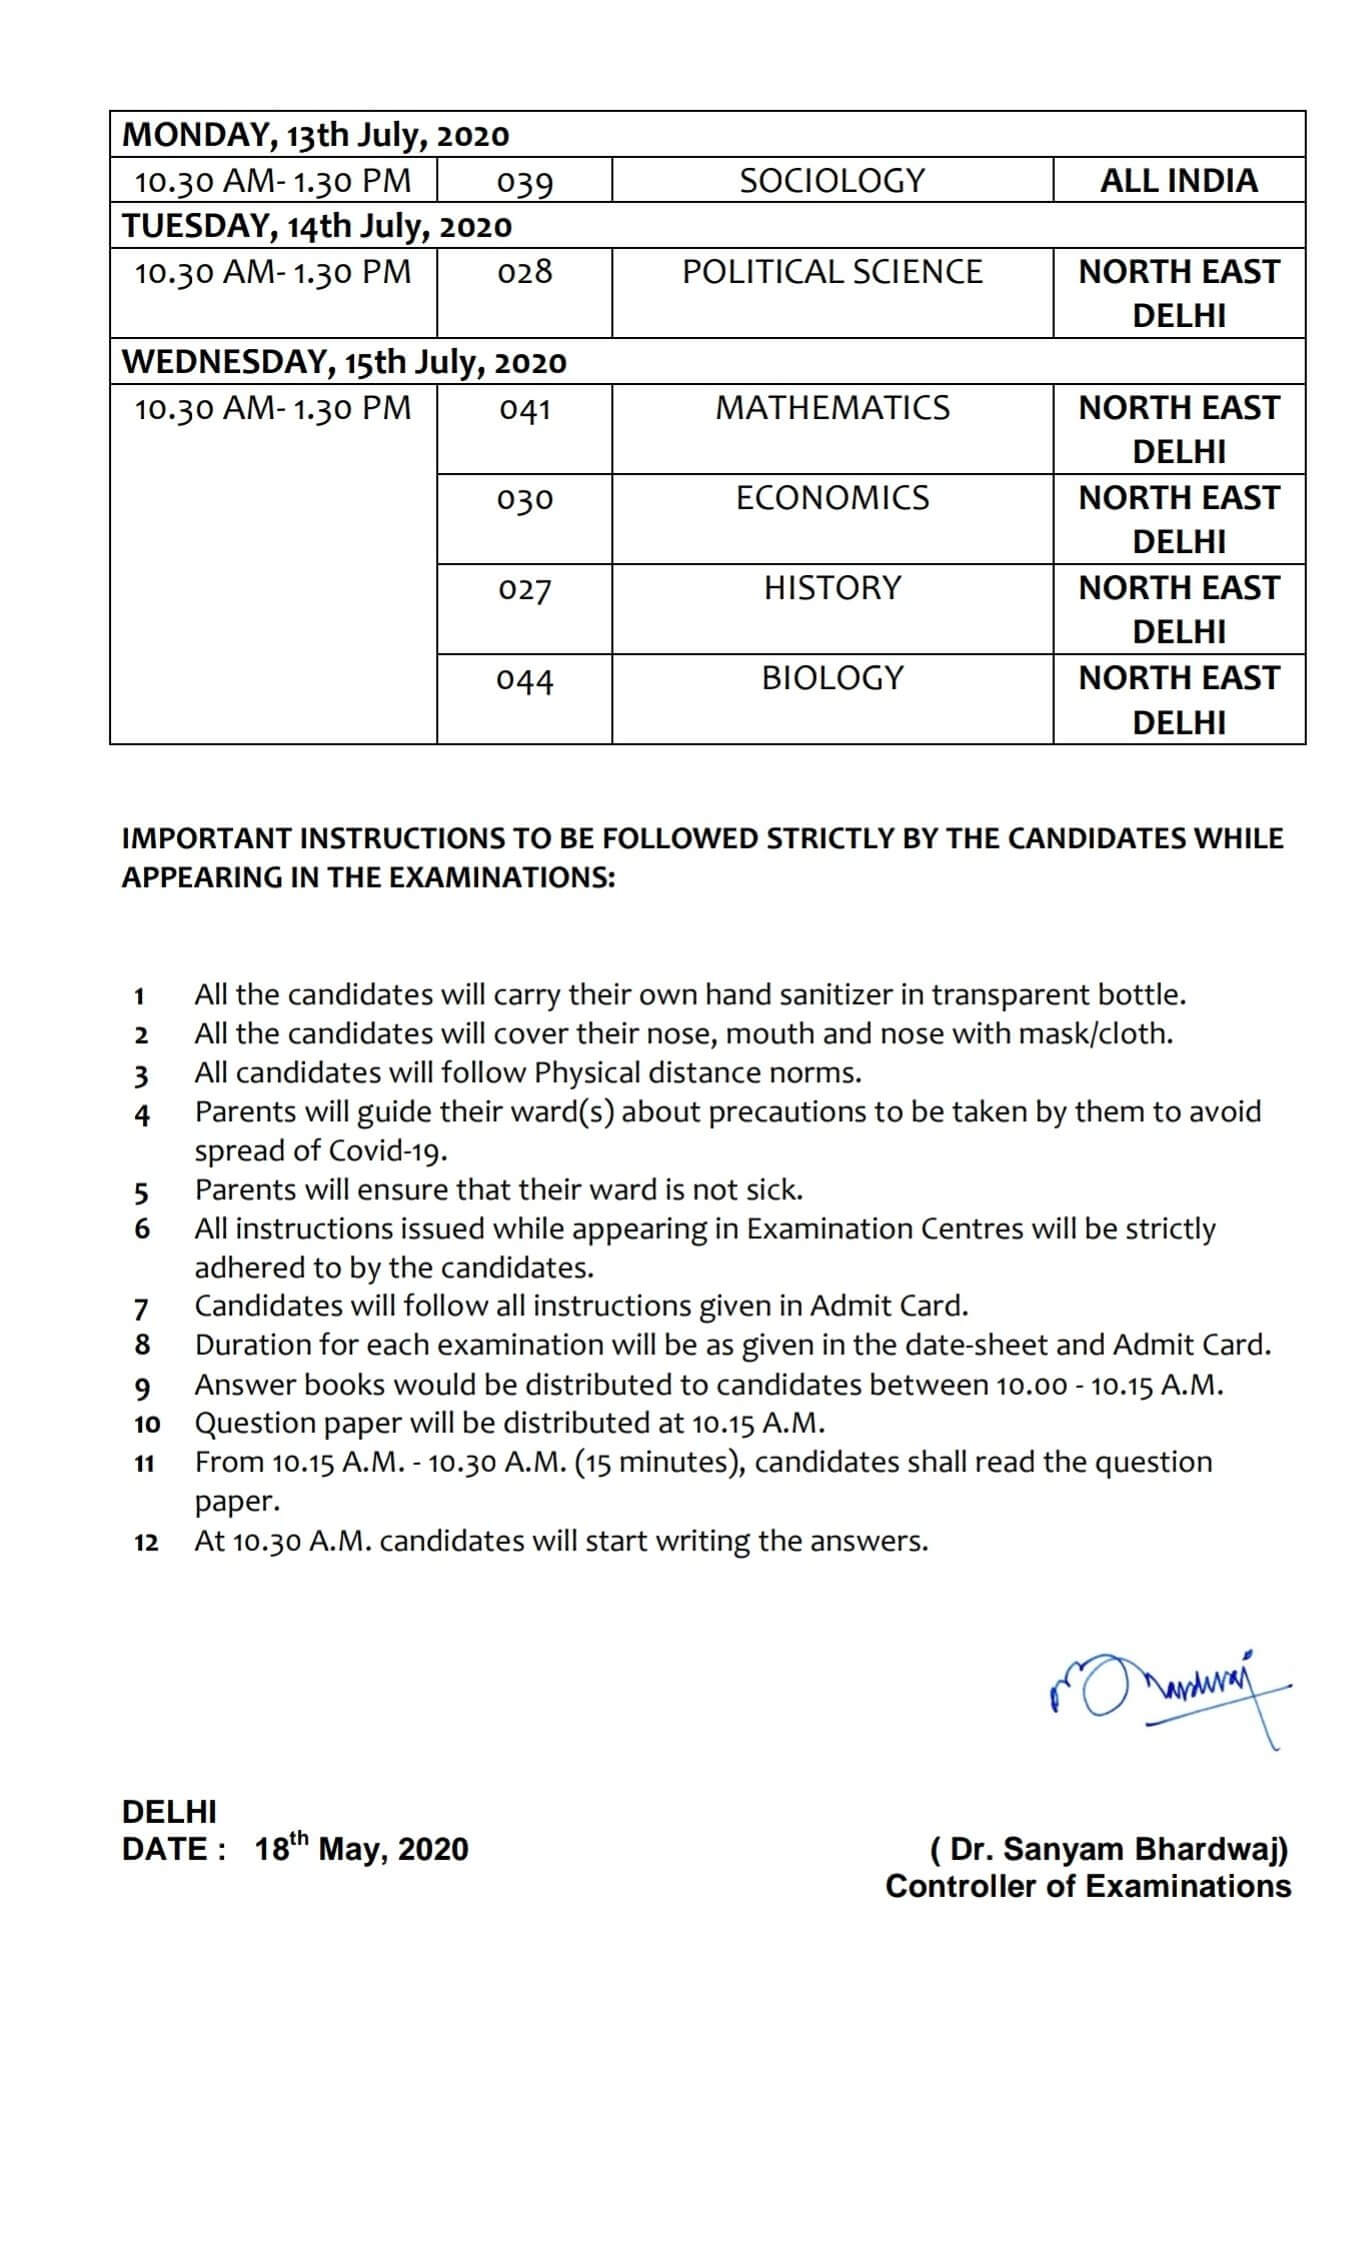 CBSE Date Sheet 2020 For Board Exams